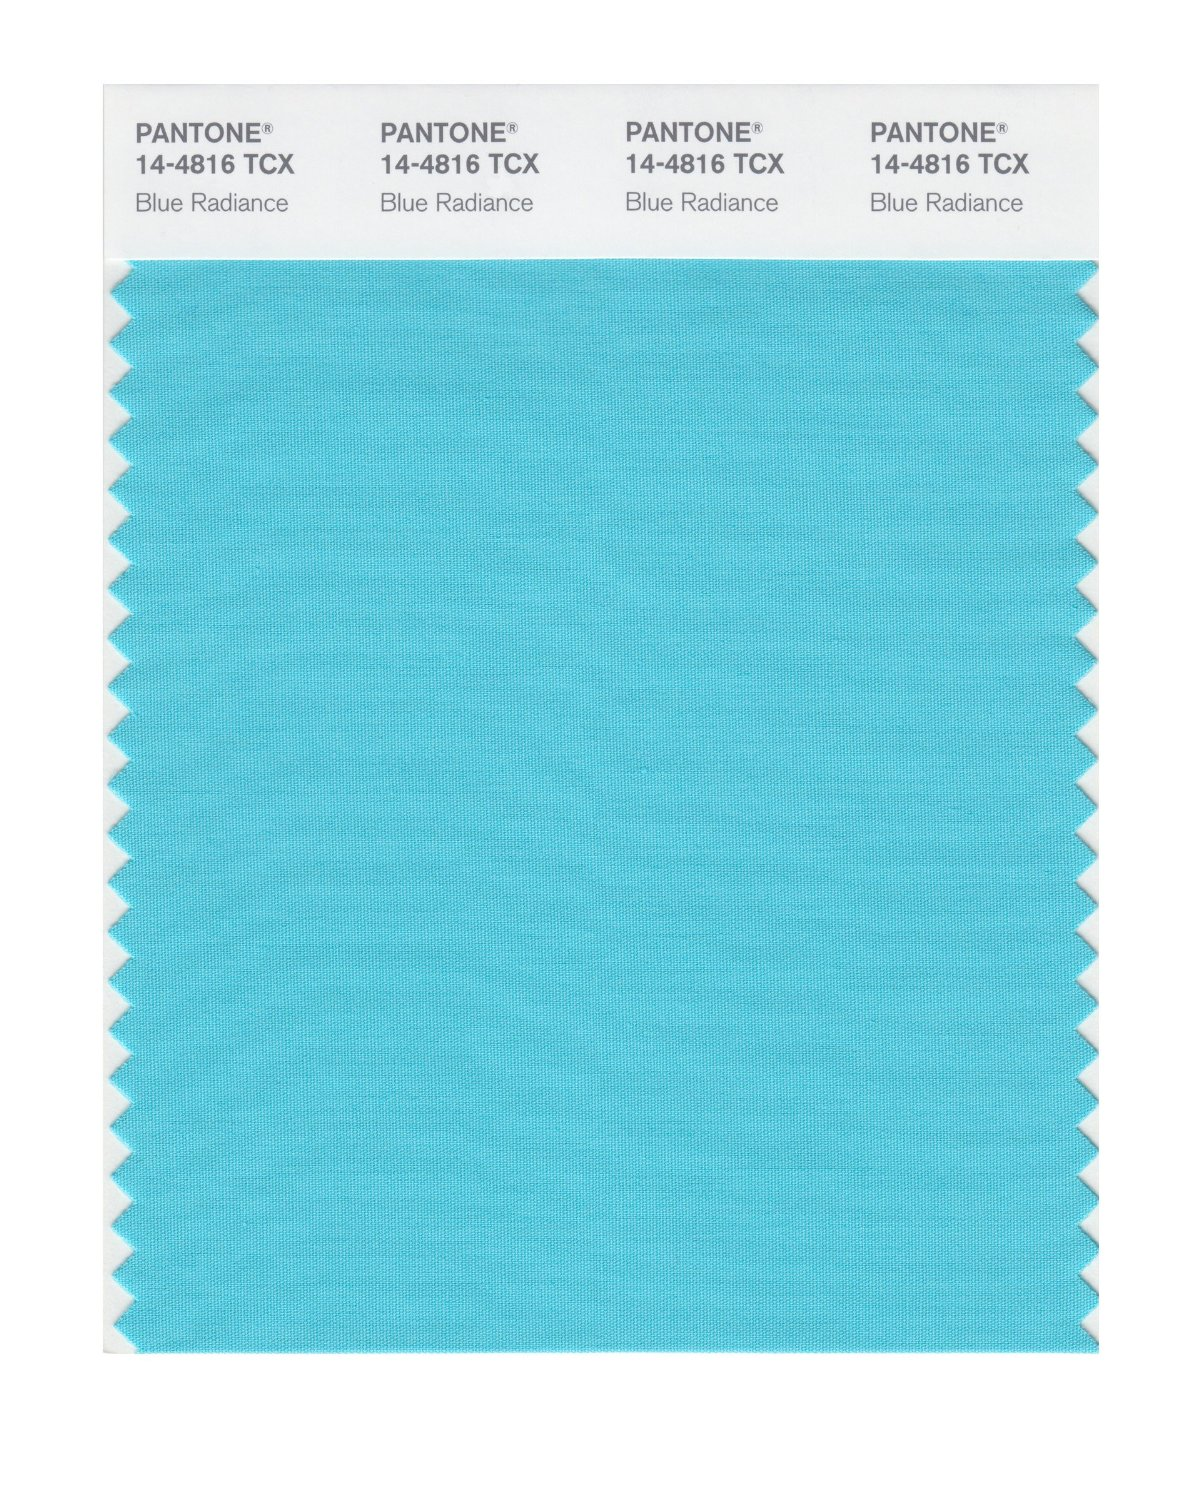 Pantone Smart Swatch 14-4816 Blue Radiance